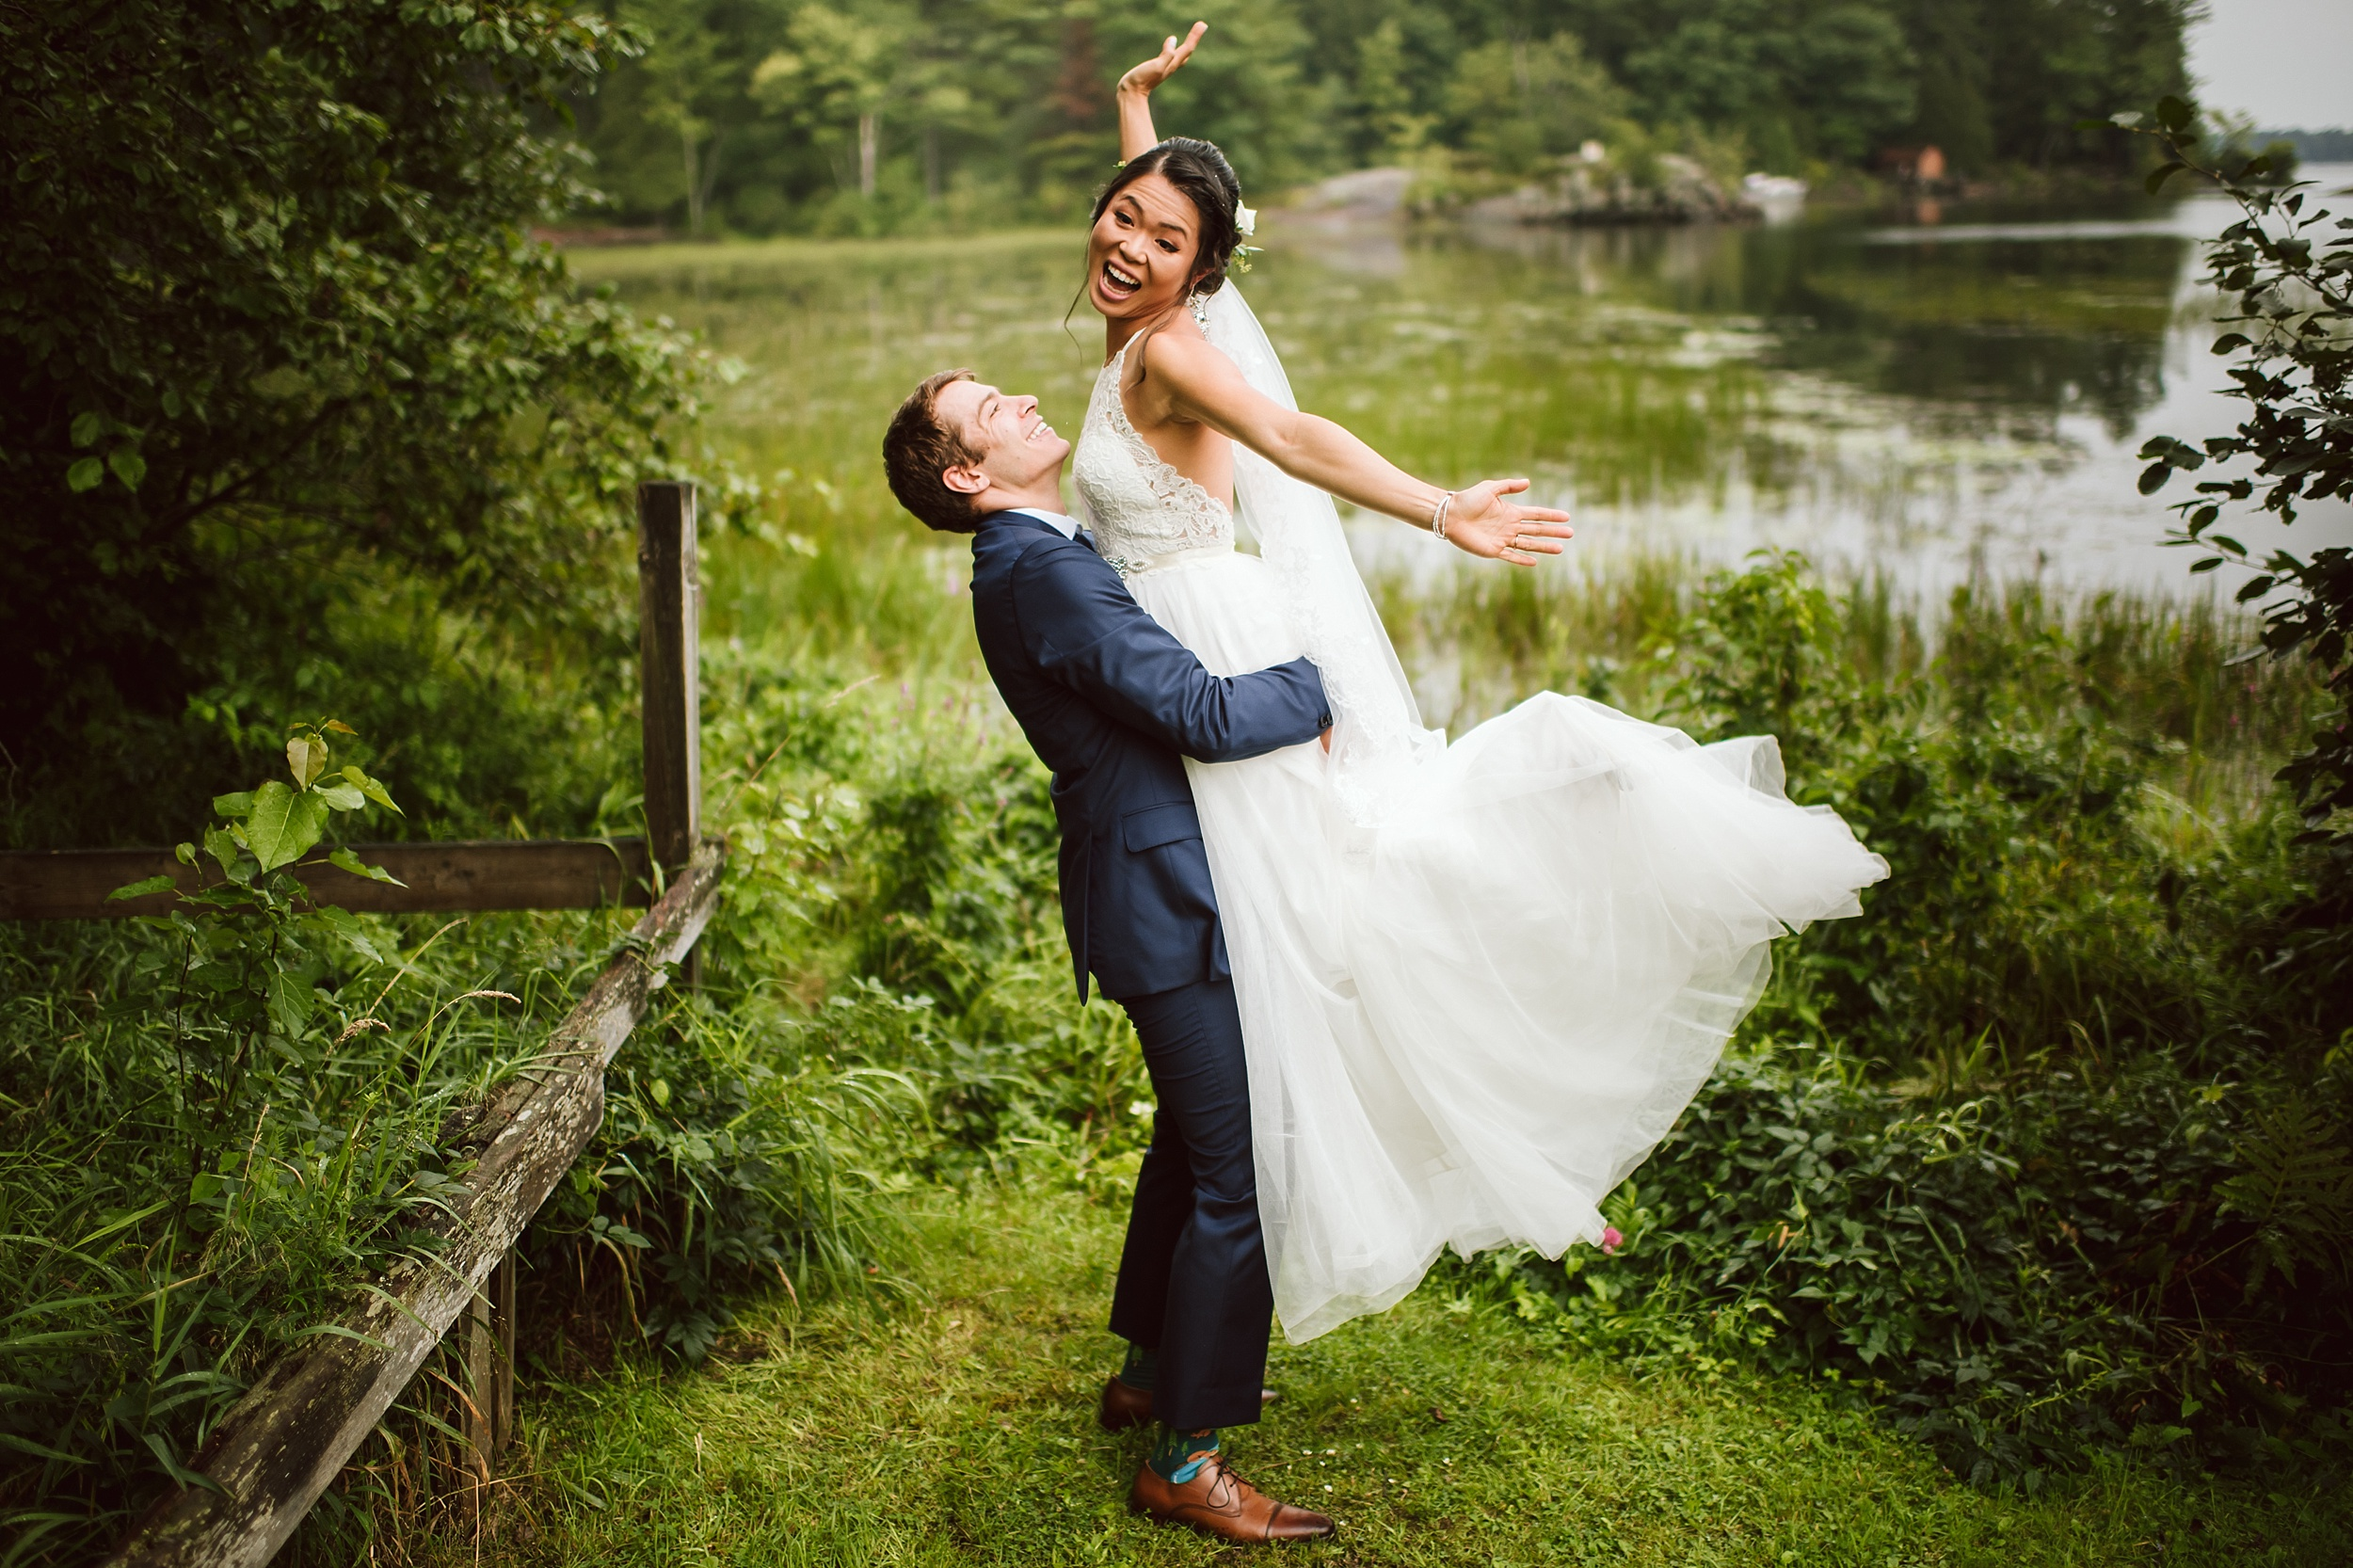 Muskoka_Wedding_Photographer_Gravenhurst0026.jpg